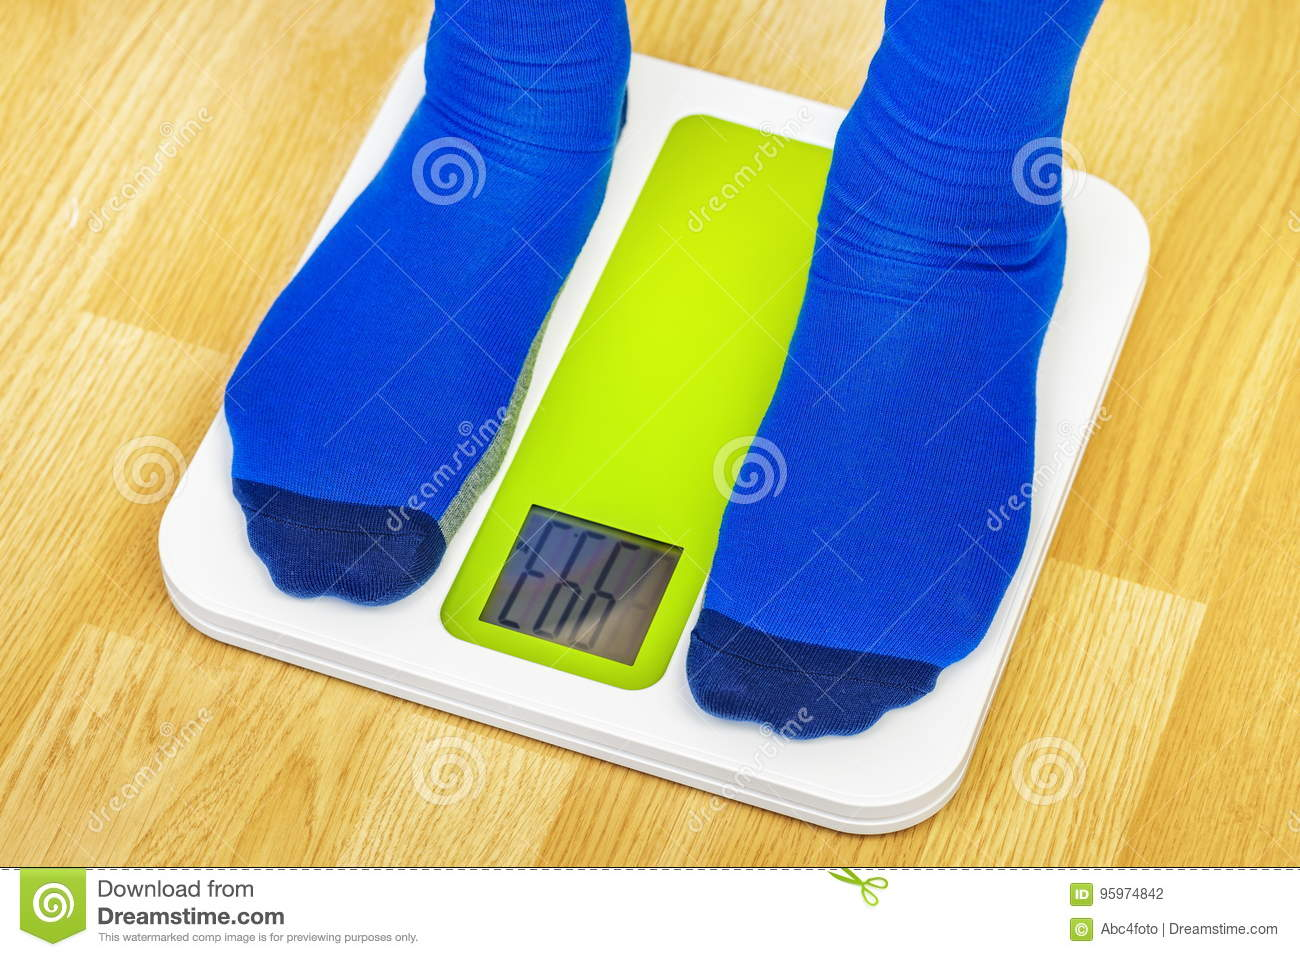 Male in socks with overweight standing on the scale